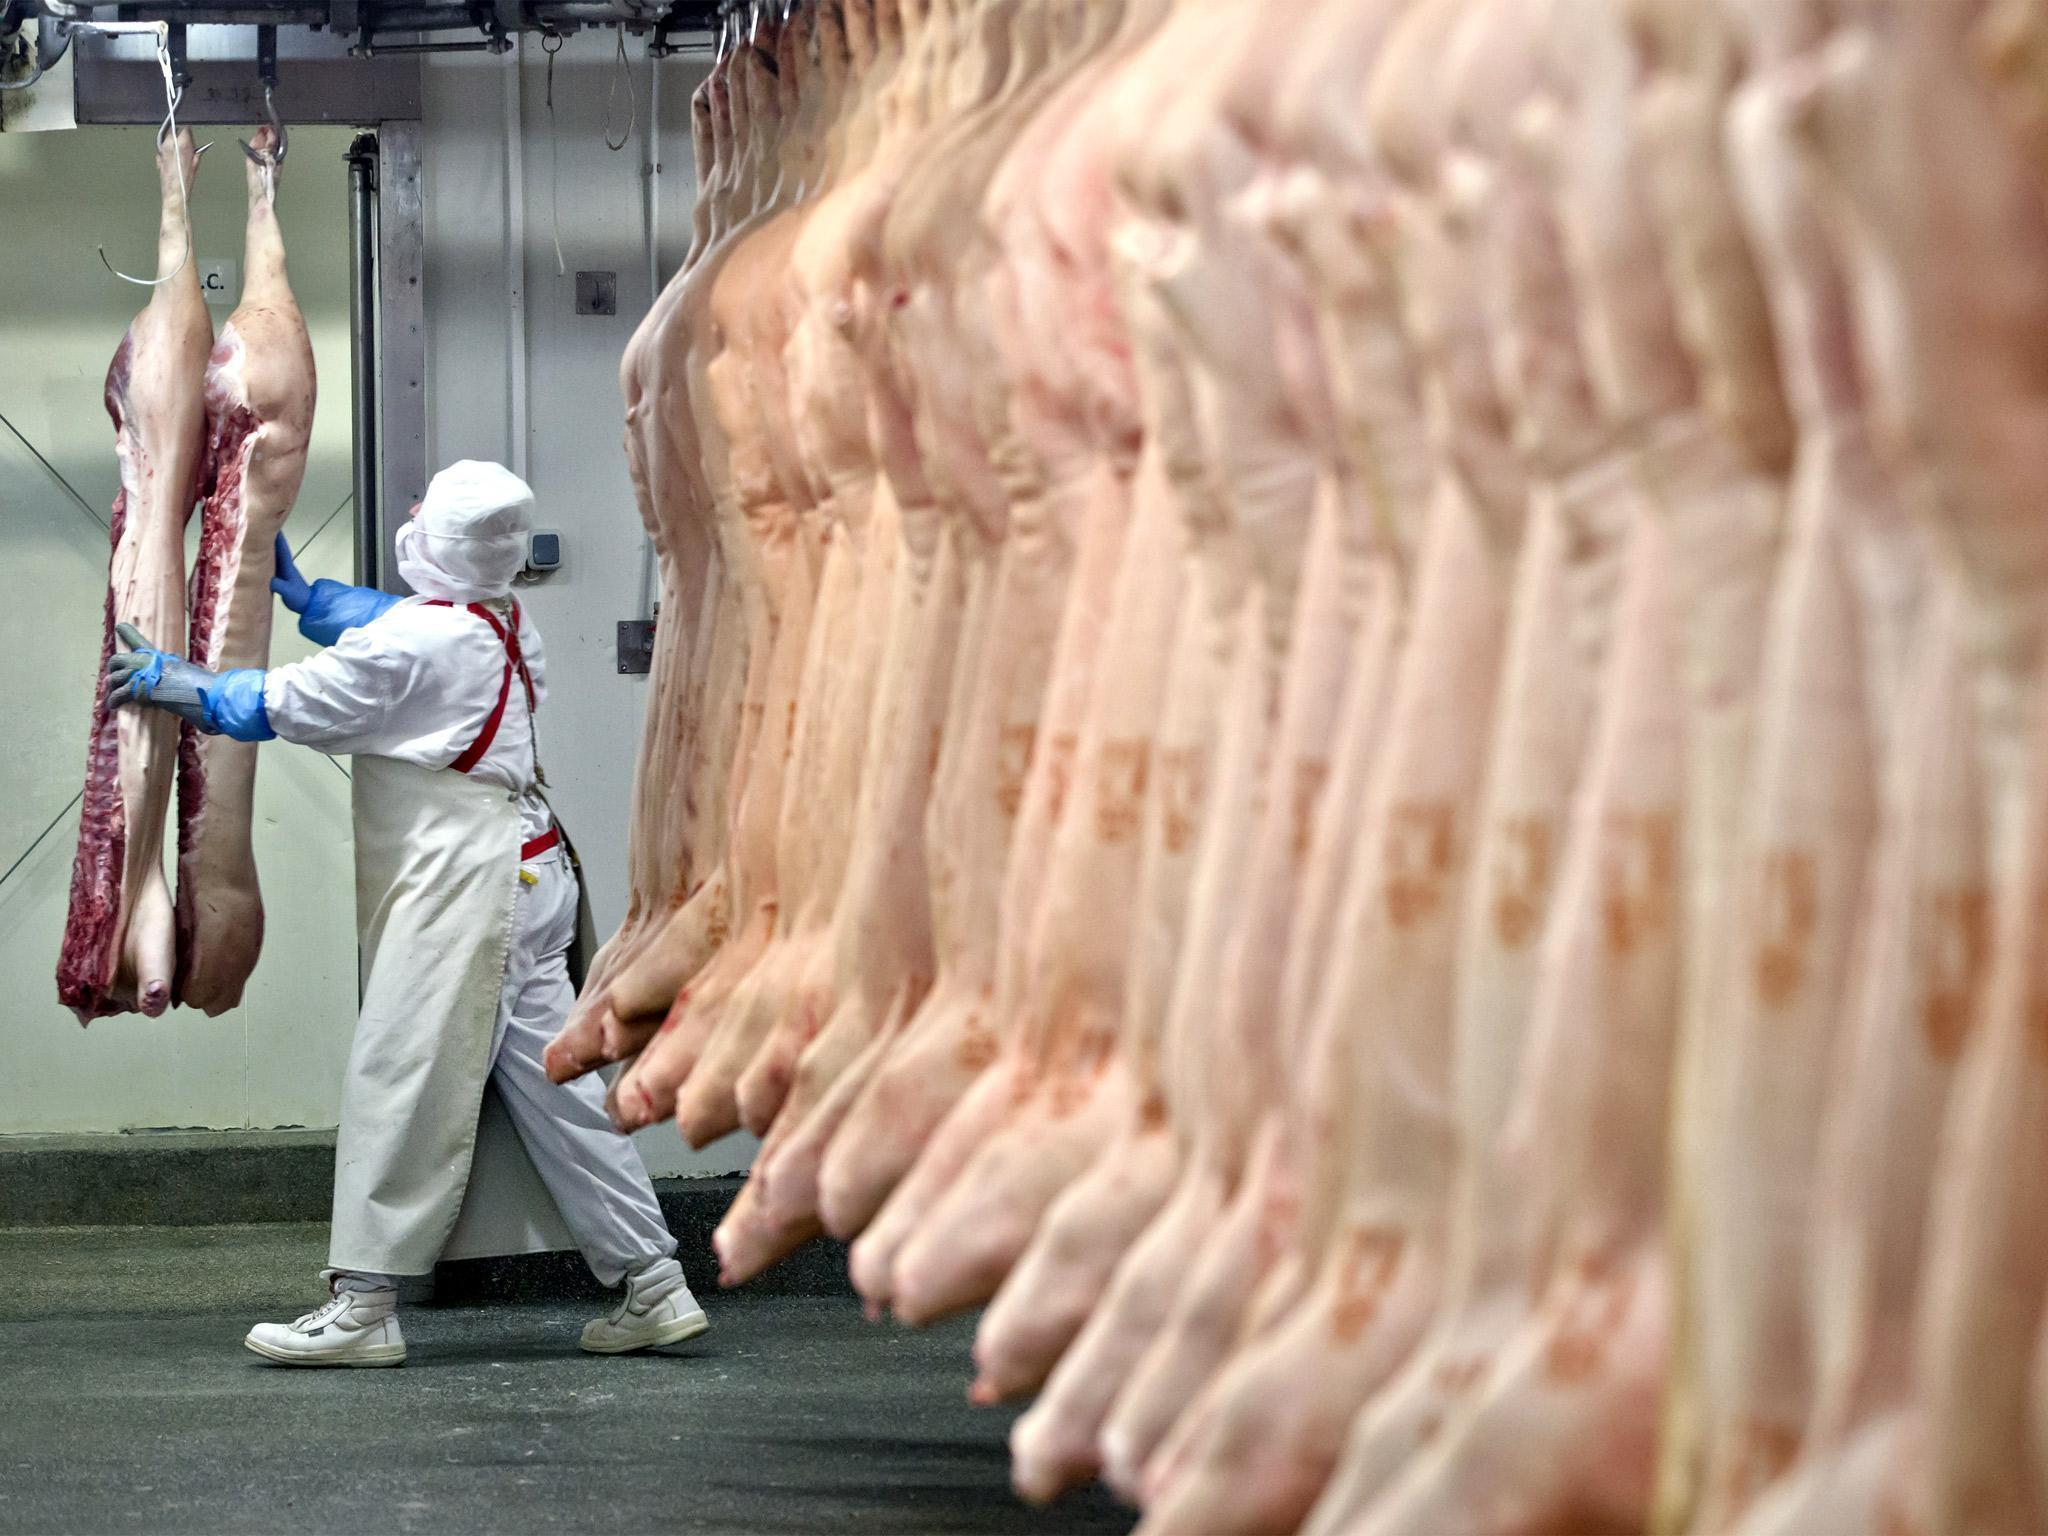 Never mind CCTV in slaughterhouses – we need to end the meat and dairy industry altogether